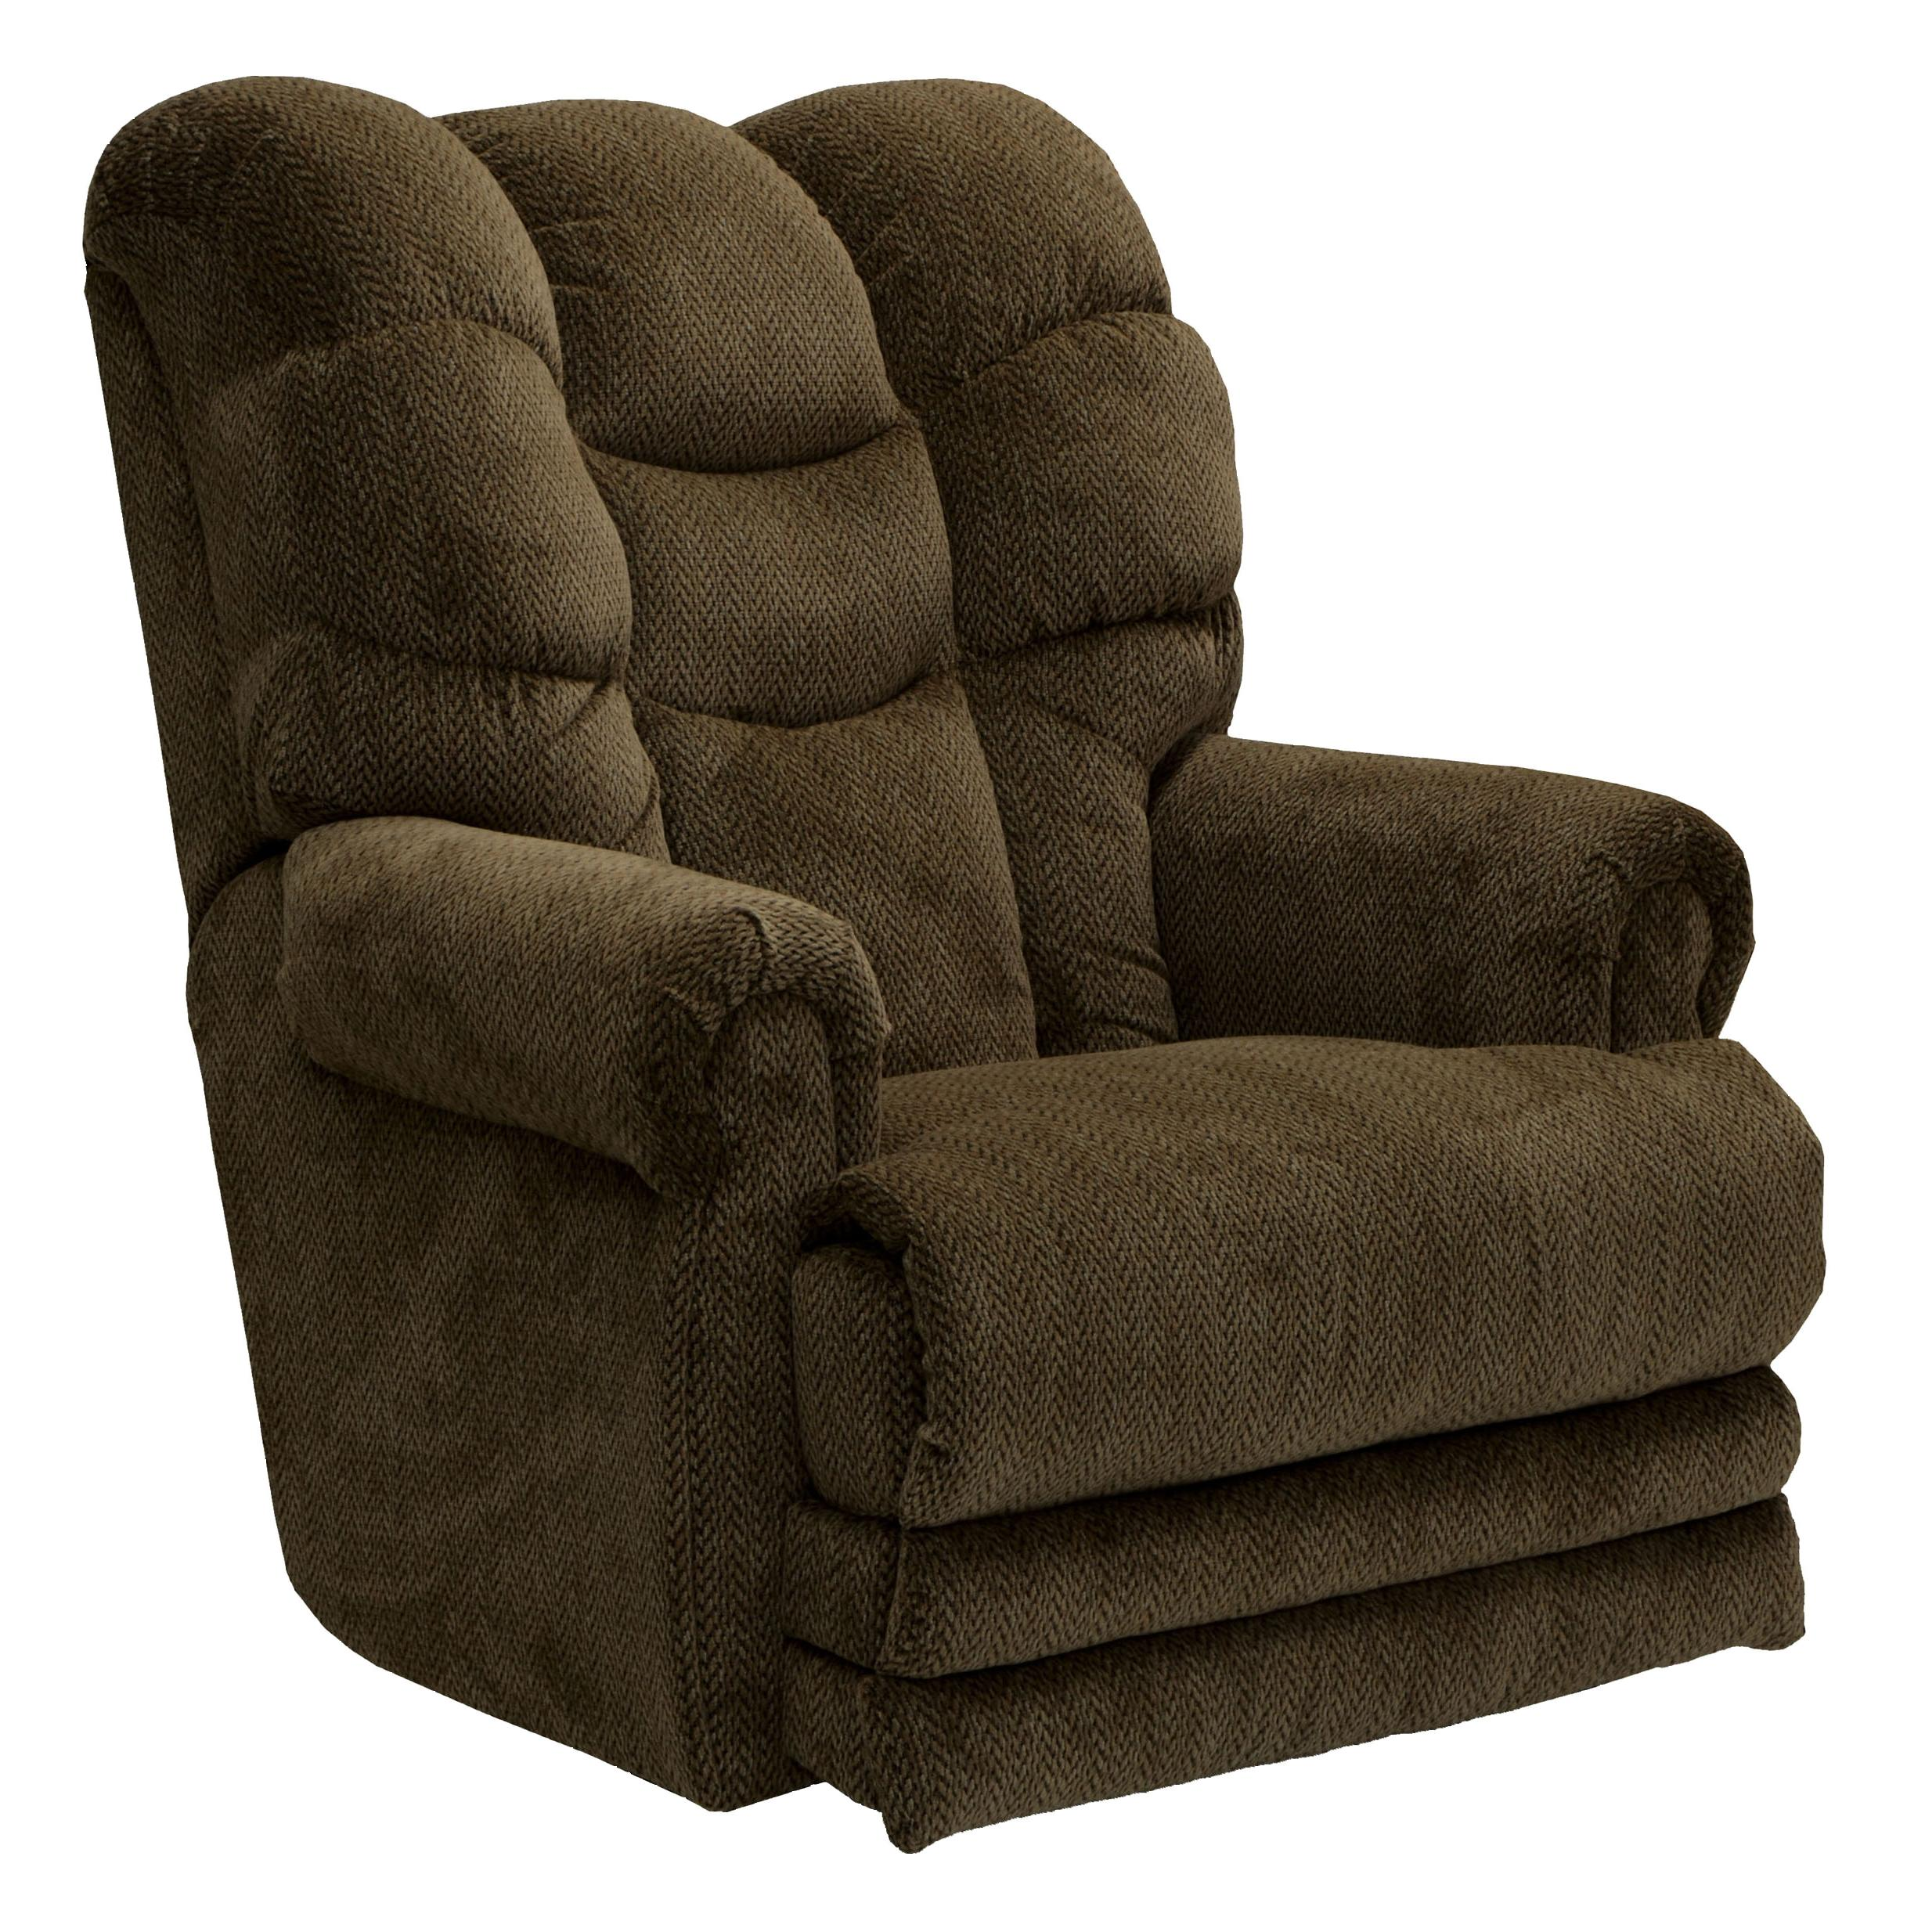 Catnapper Chair Catnapper Motion Chairs And Recliners Malone Power Lay